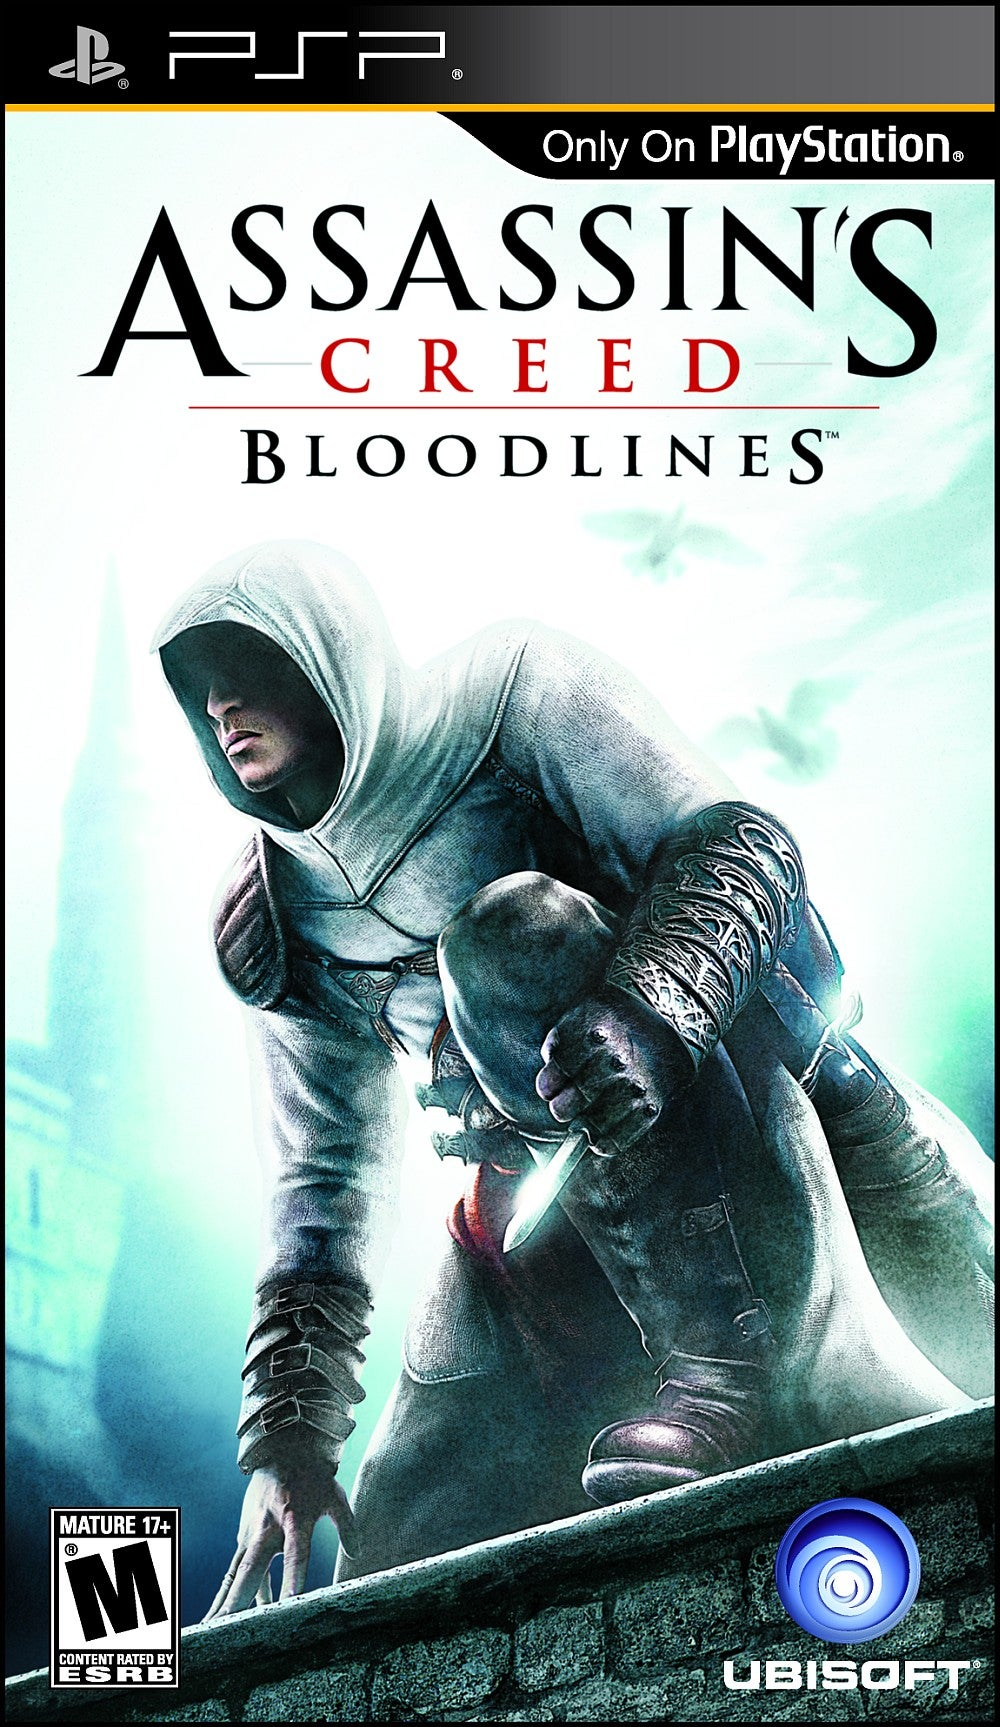 Assassins Creed Bloodlines